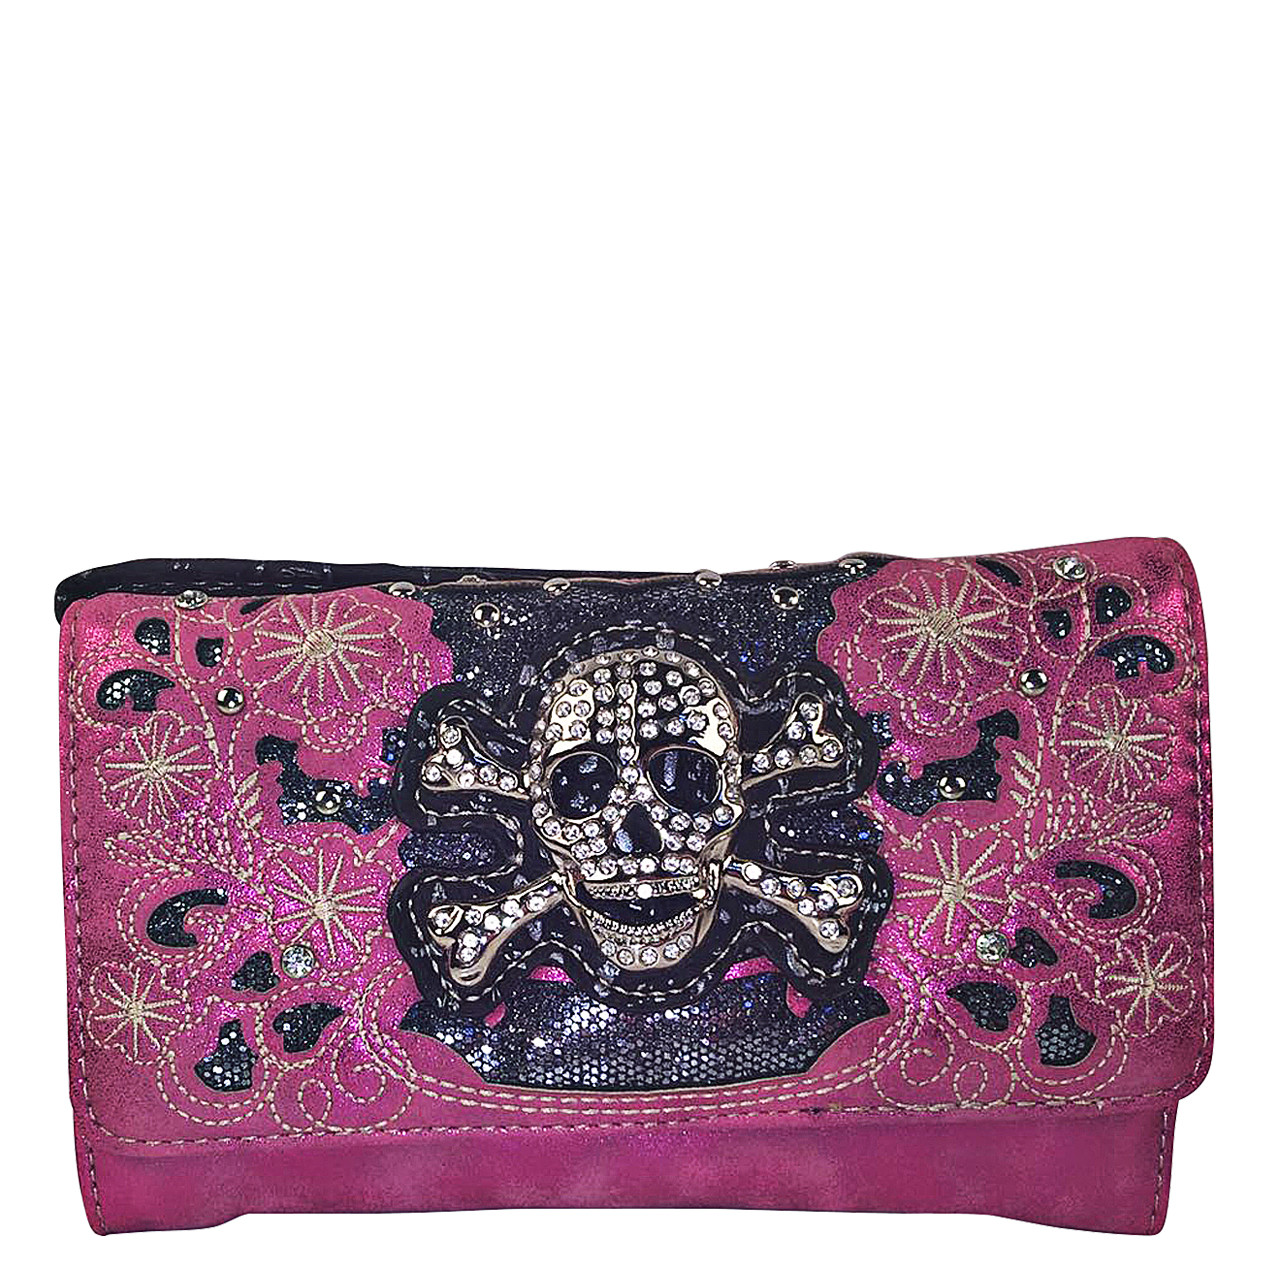 HOT PINK FLOWER RHINESTONE SKULL STUDDED LOOK CLUTCH TRIFOLD WALLET